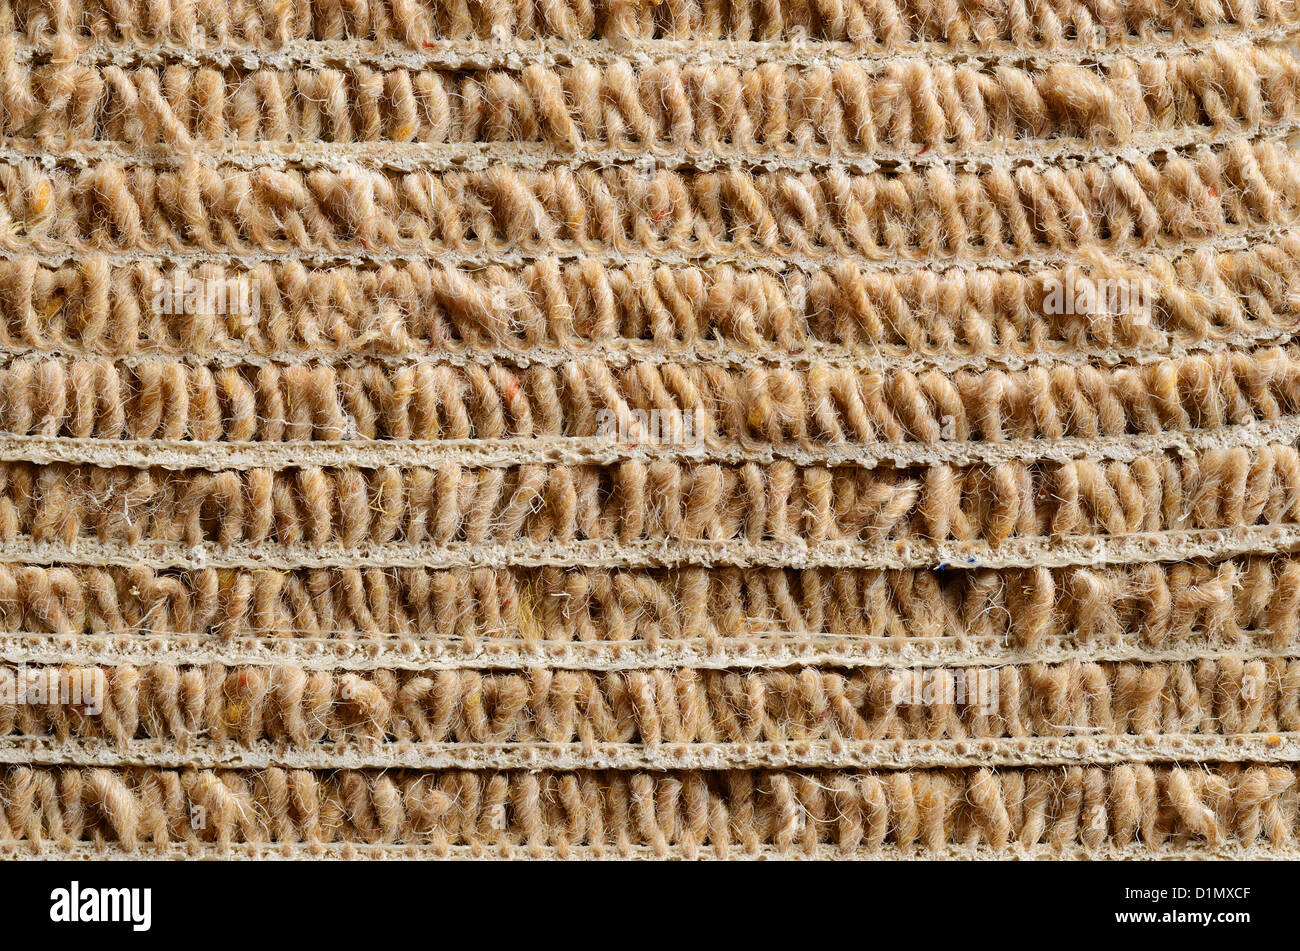 Cross section of a roll of beige carpet - Stock Image